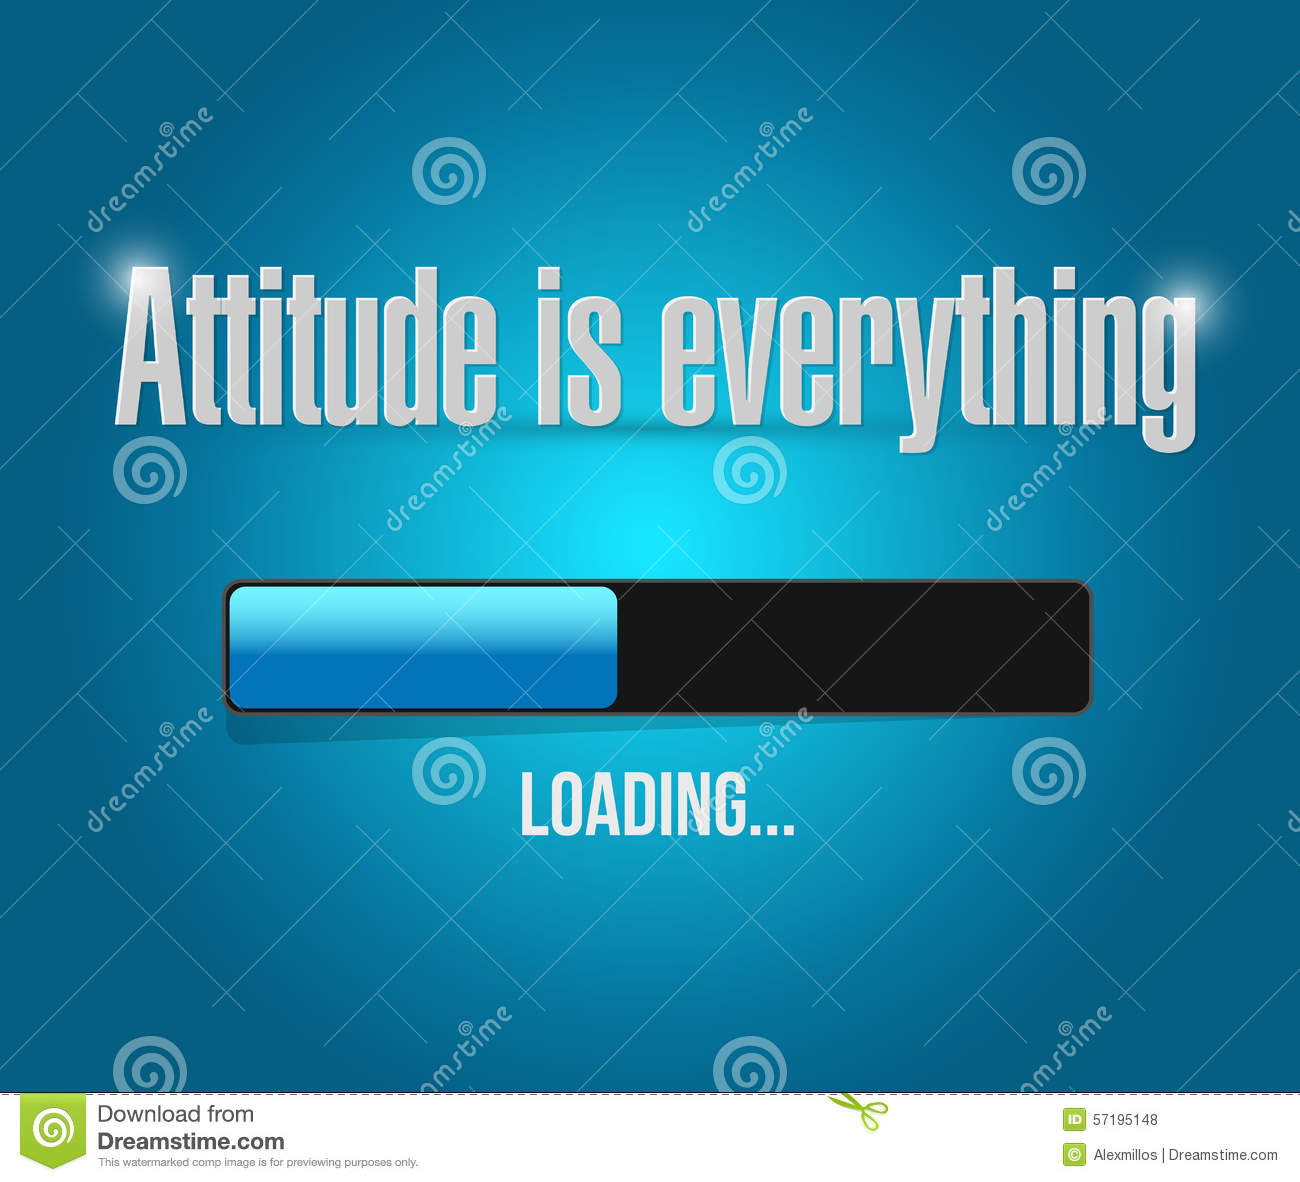 royaltyfree download attitude is everything loading